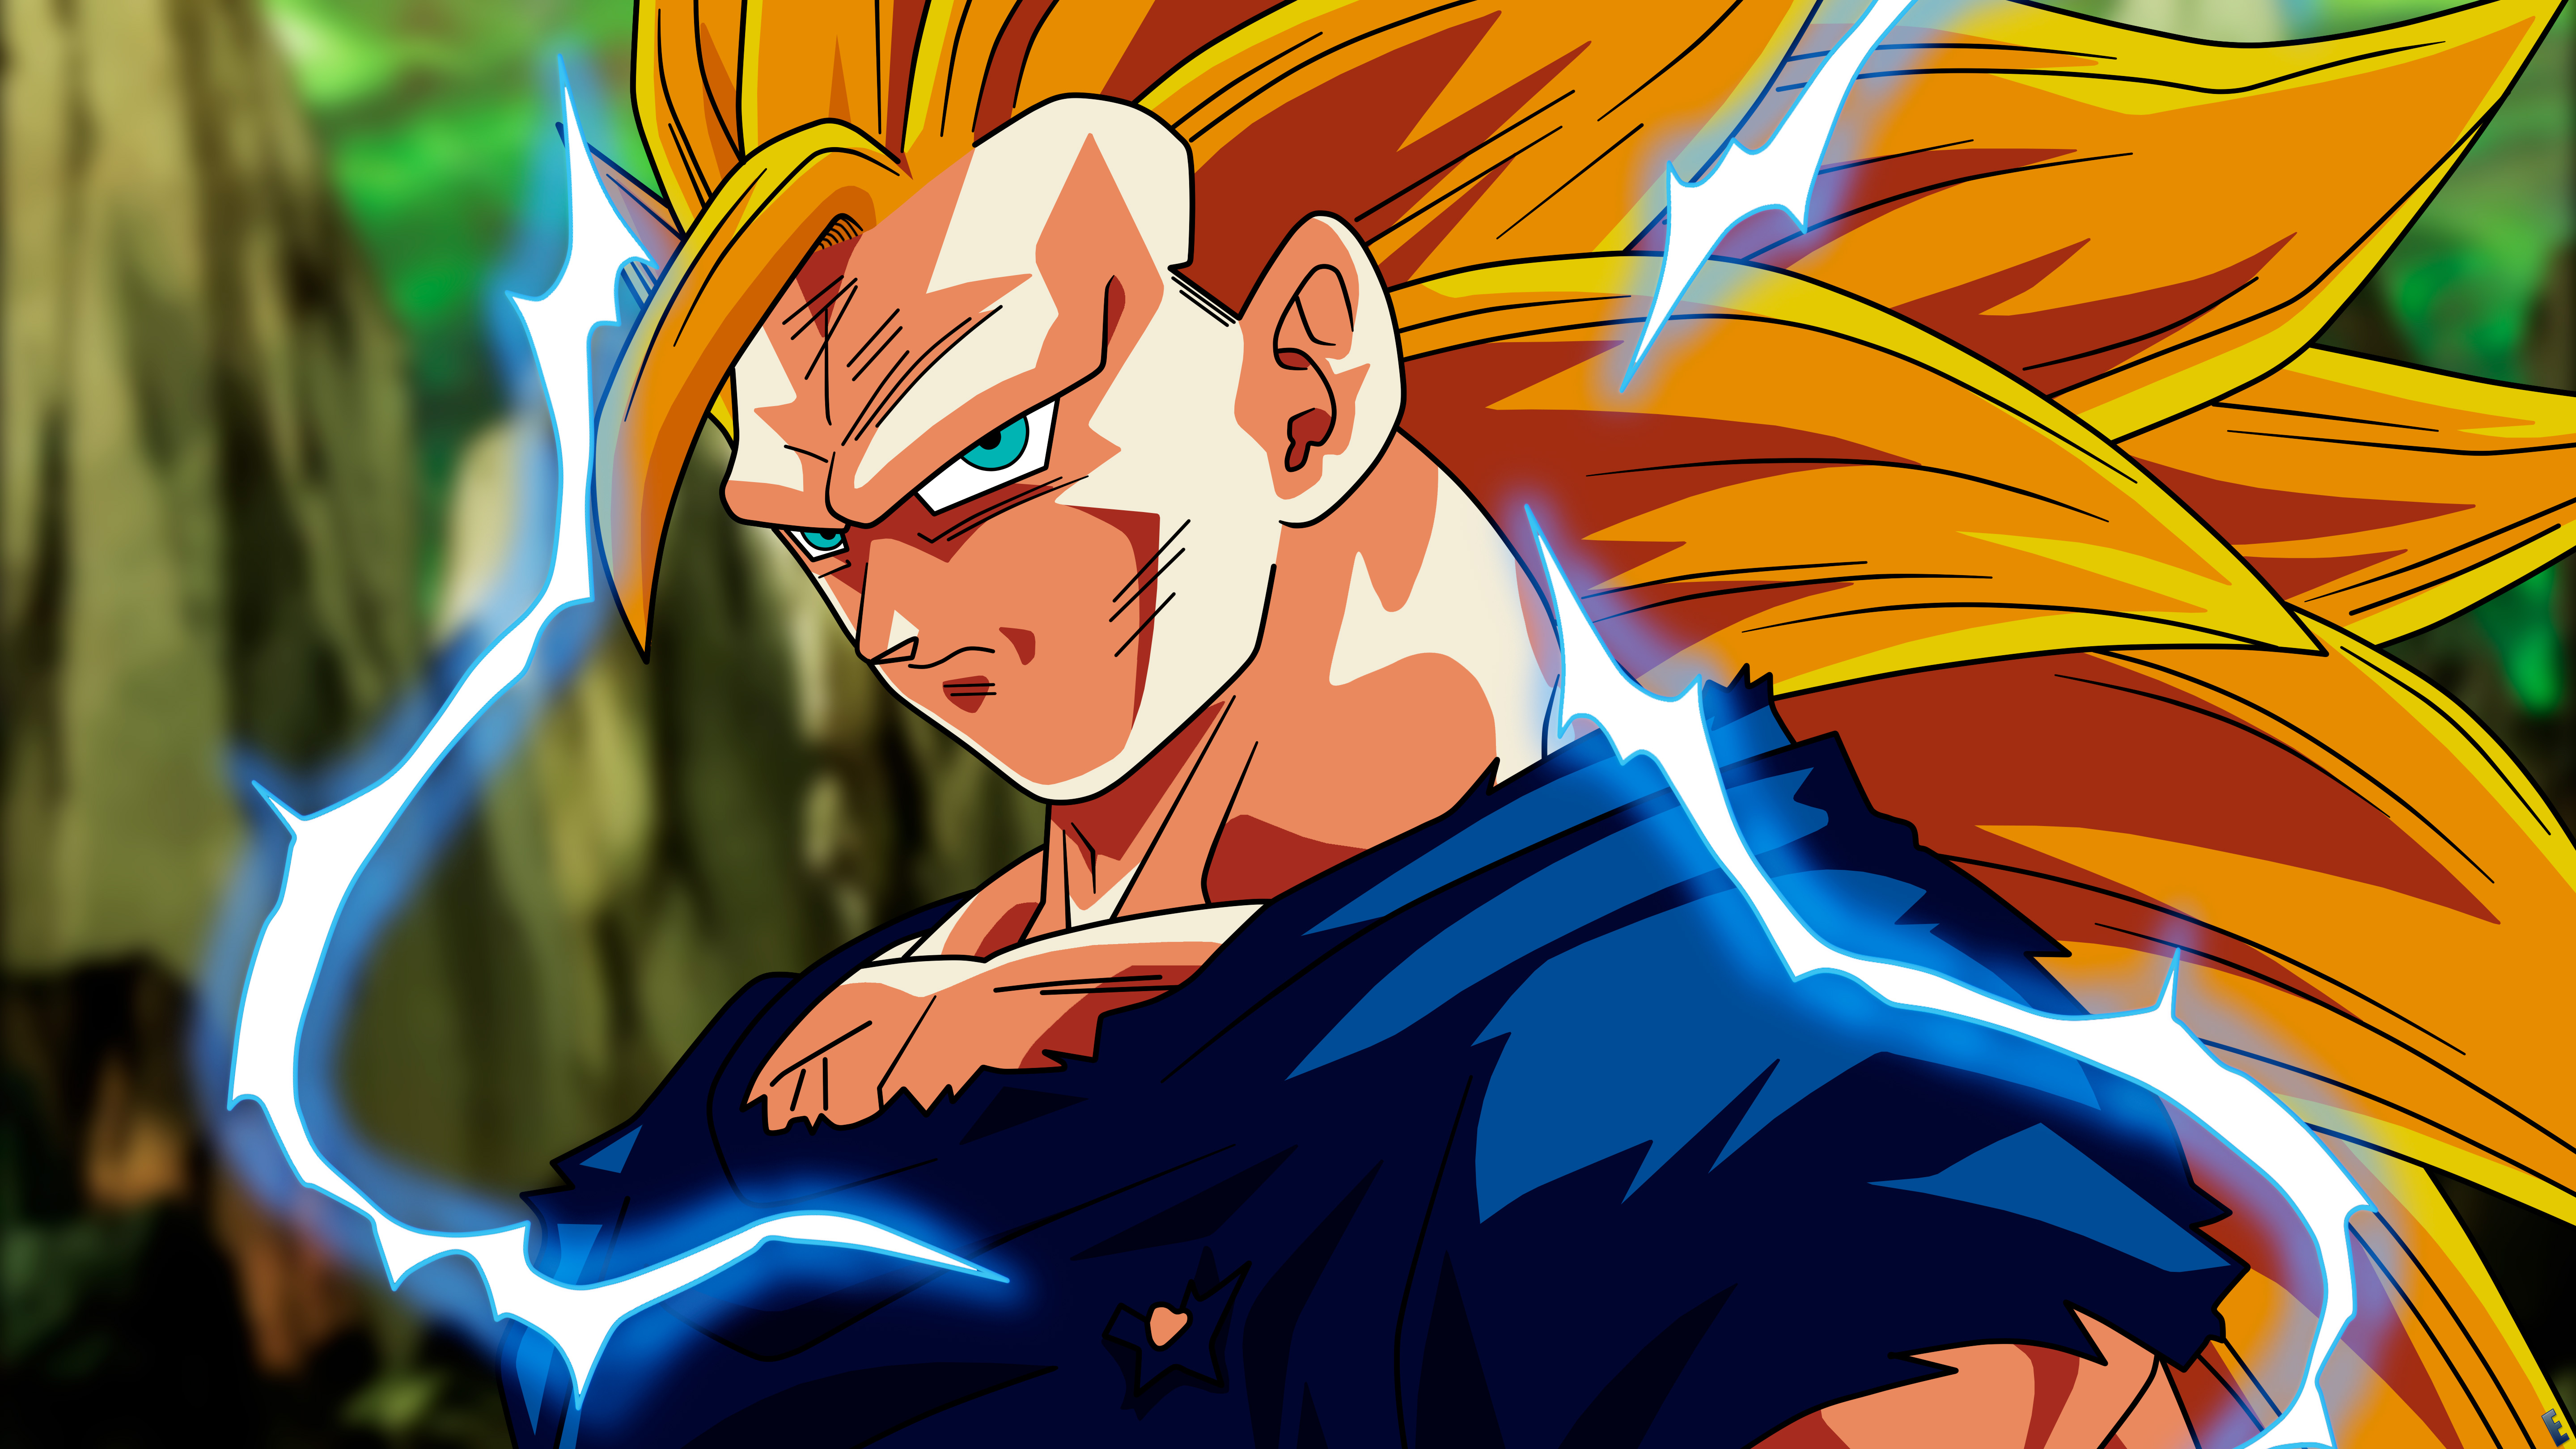 Goku Anime Dragon Ball Super 5k, HD Anime, 4k Wallpapers, Images, Backgrounds, Photos and Pictures